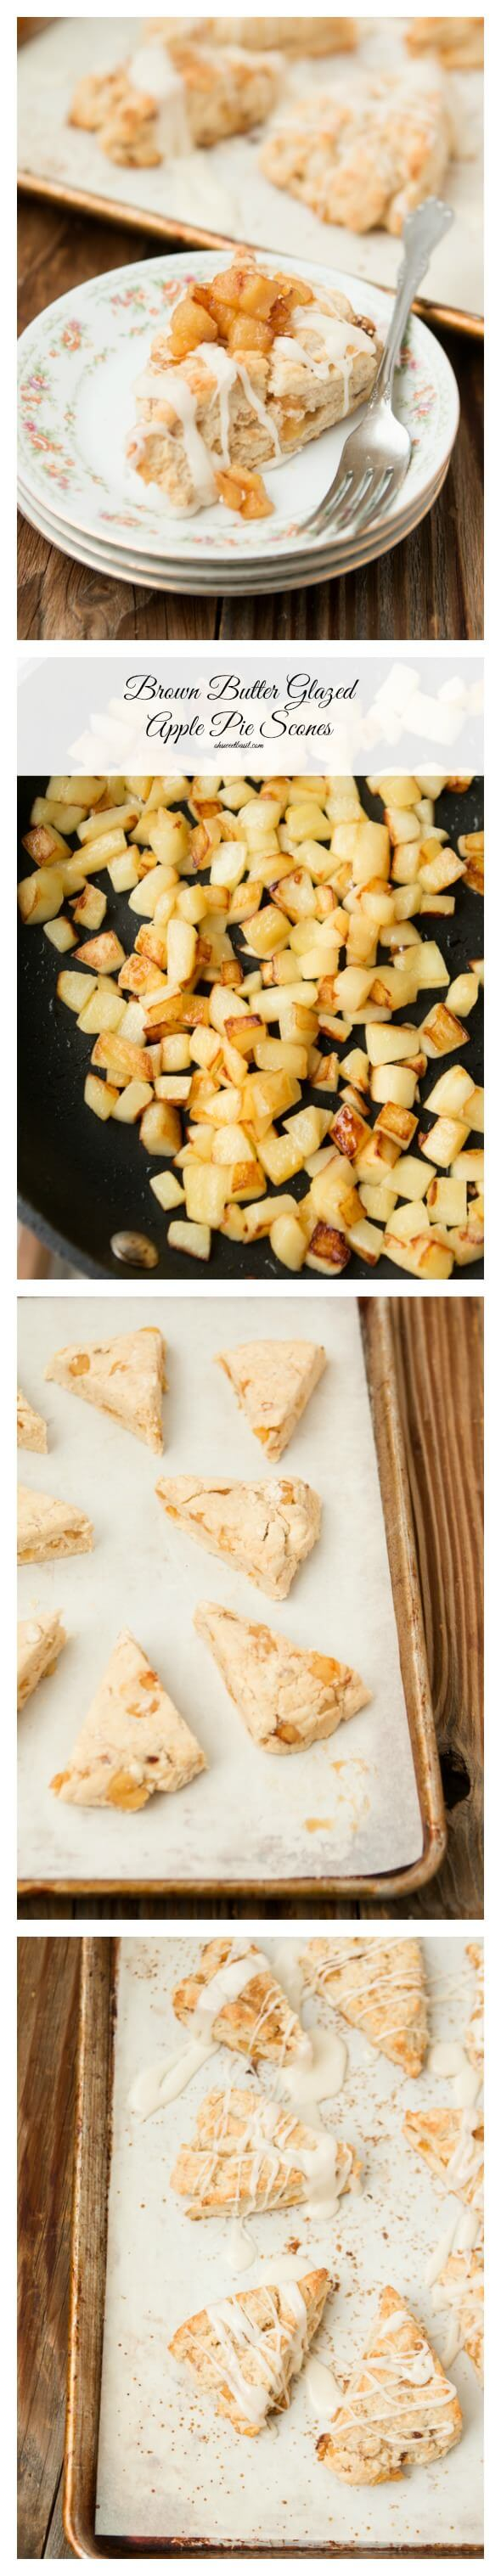 Brown butter glazed apple pie scones ohsweetbasil.com.